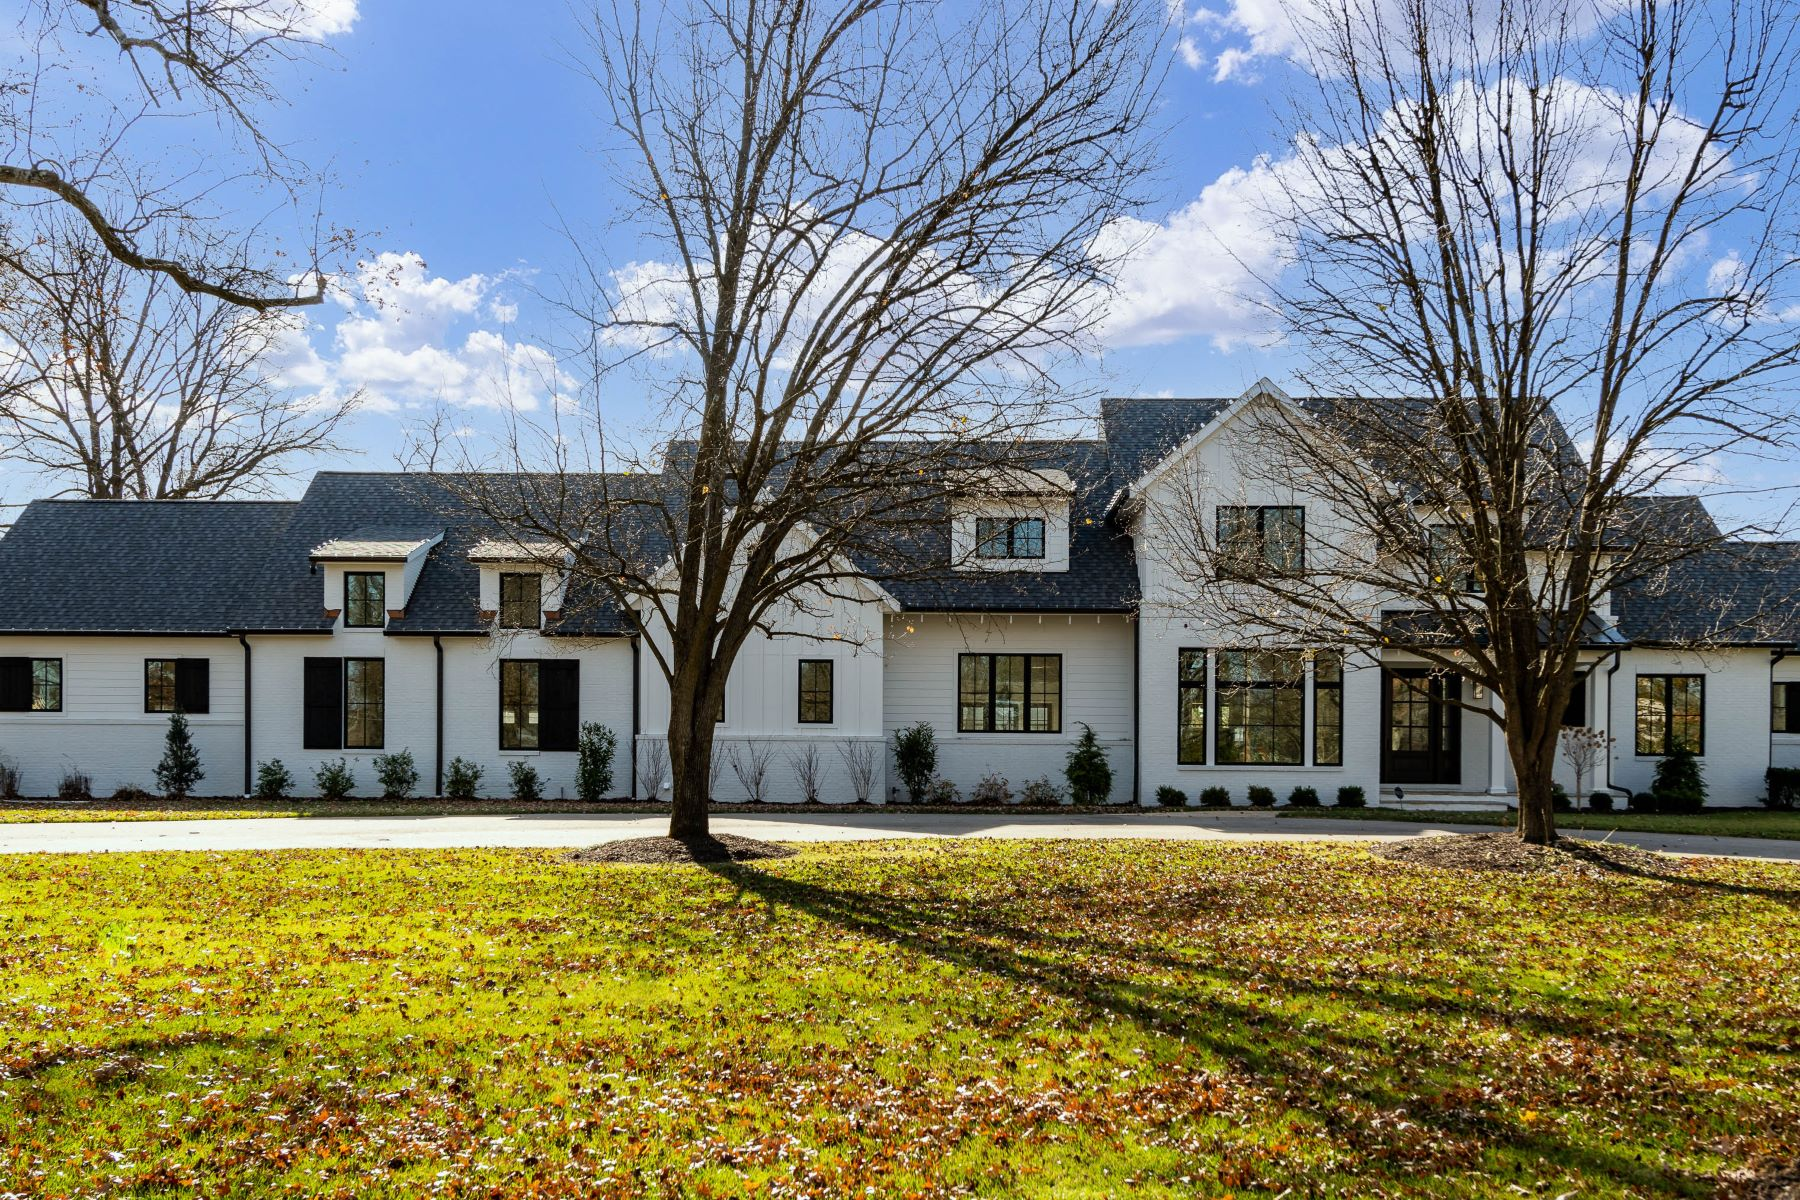 Single Family Homes for Sale at Modern Farmhouse New Construction in Frontenac 11600 Clayton Road Frontenac, Missouri 63131 United States